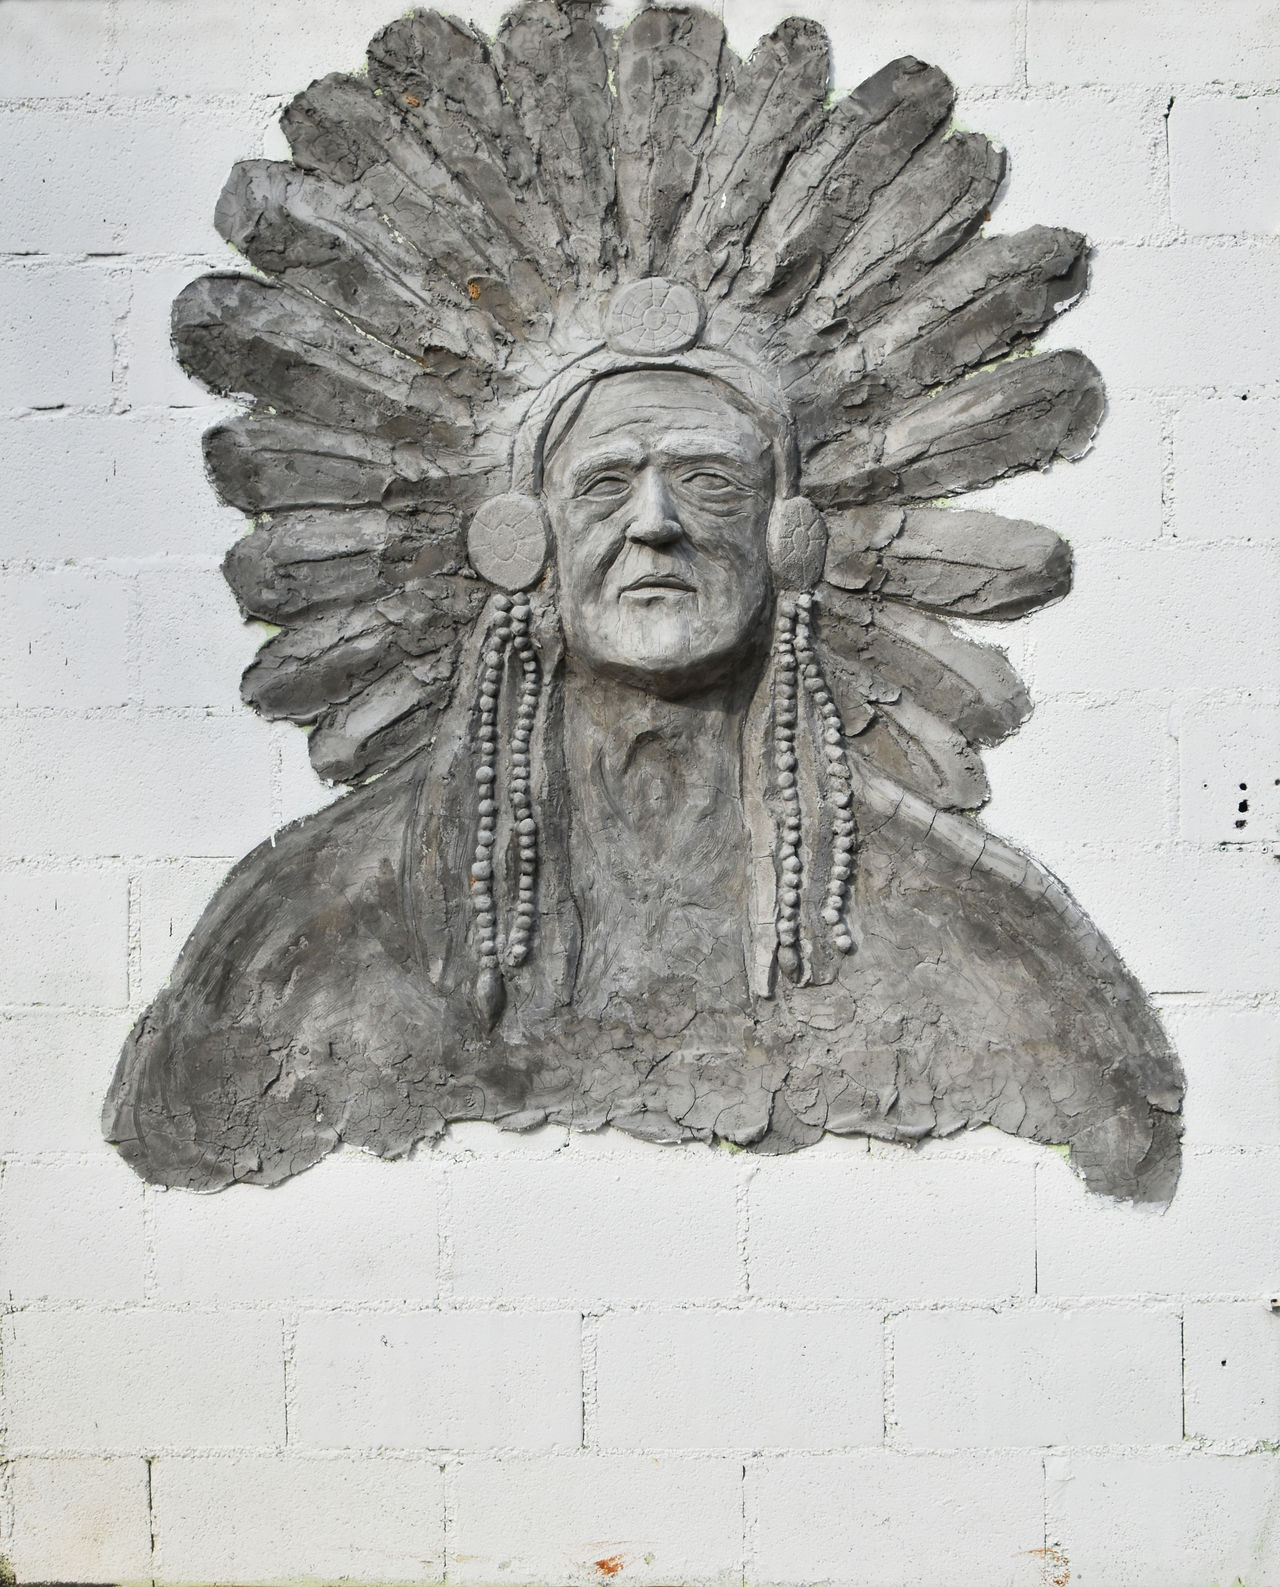 Why this American Indian chief bas relief has appeared at toilet of Koh Samui island in Thailand? For me it is still a question. American American Indian Art Artistic Authentic Bas Relief Basrelief Cement Chief Concrete Ethnic Feather  Feathers Indian Native Native American Indian Old Original Q Relief Stone